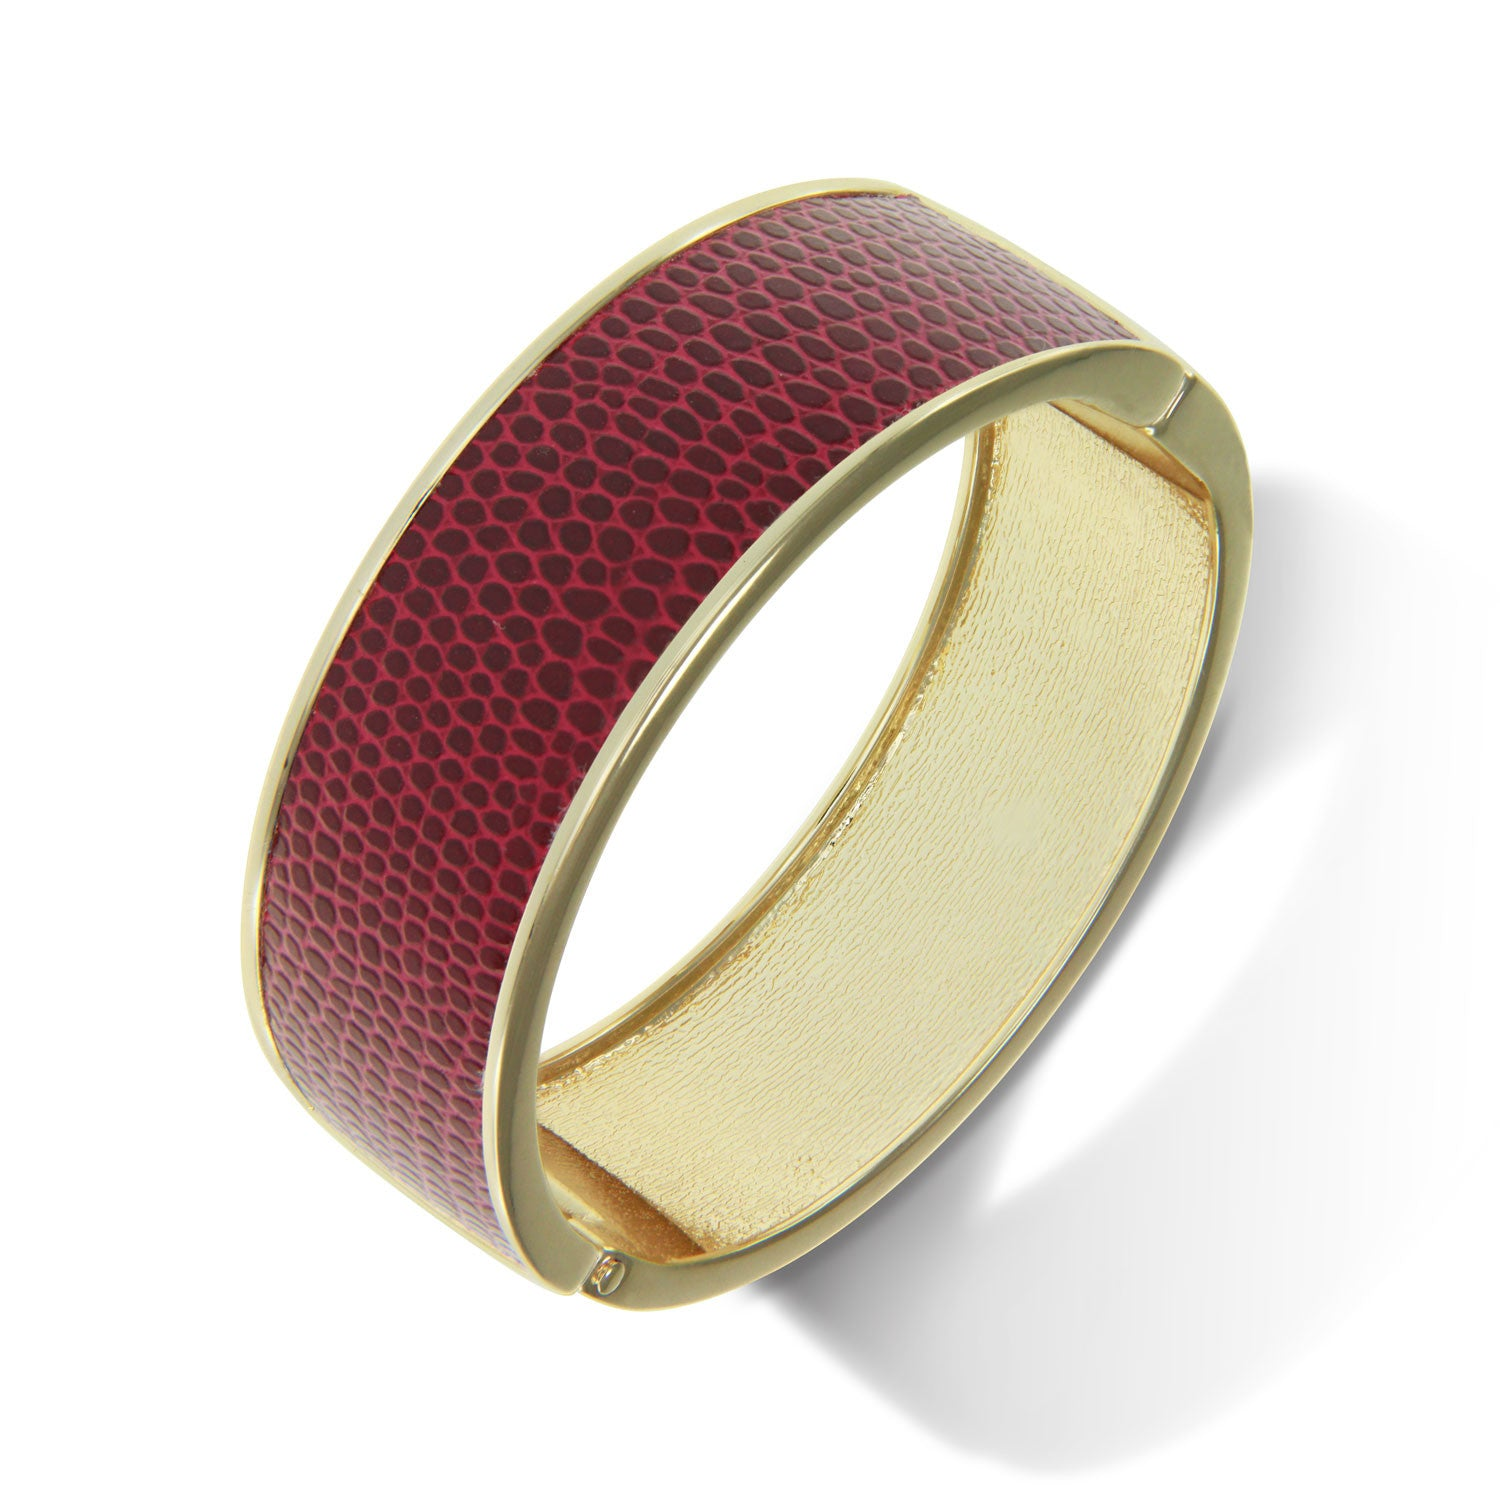 """Sabi Colori"" Lizard Inlay Wide Hinge Bangle - Goldtone ** VIEW MORE COLORS **"